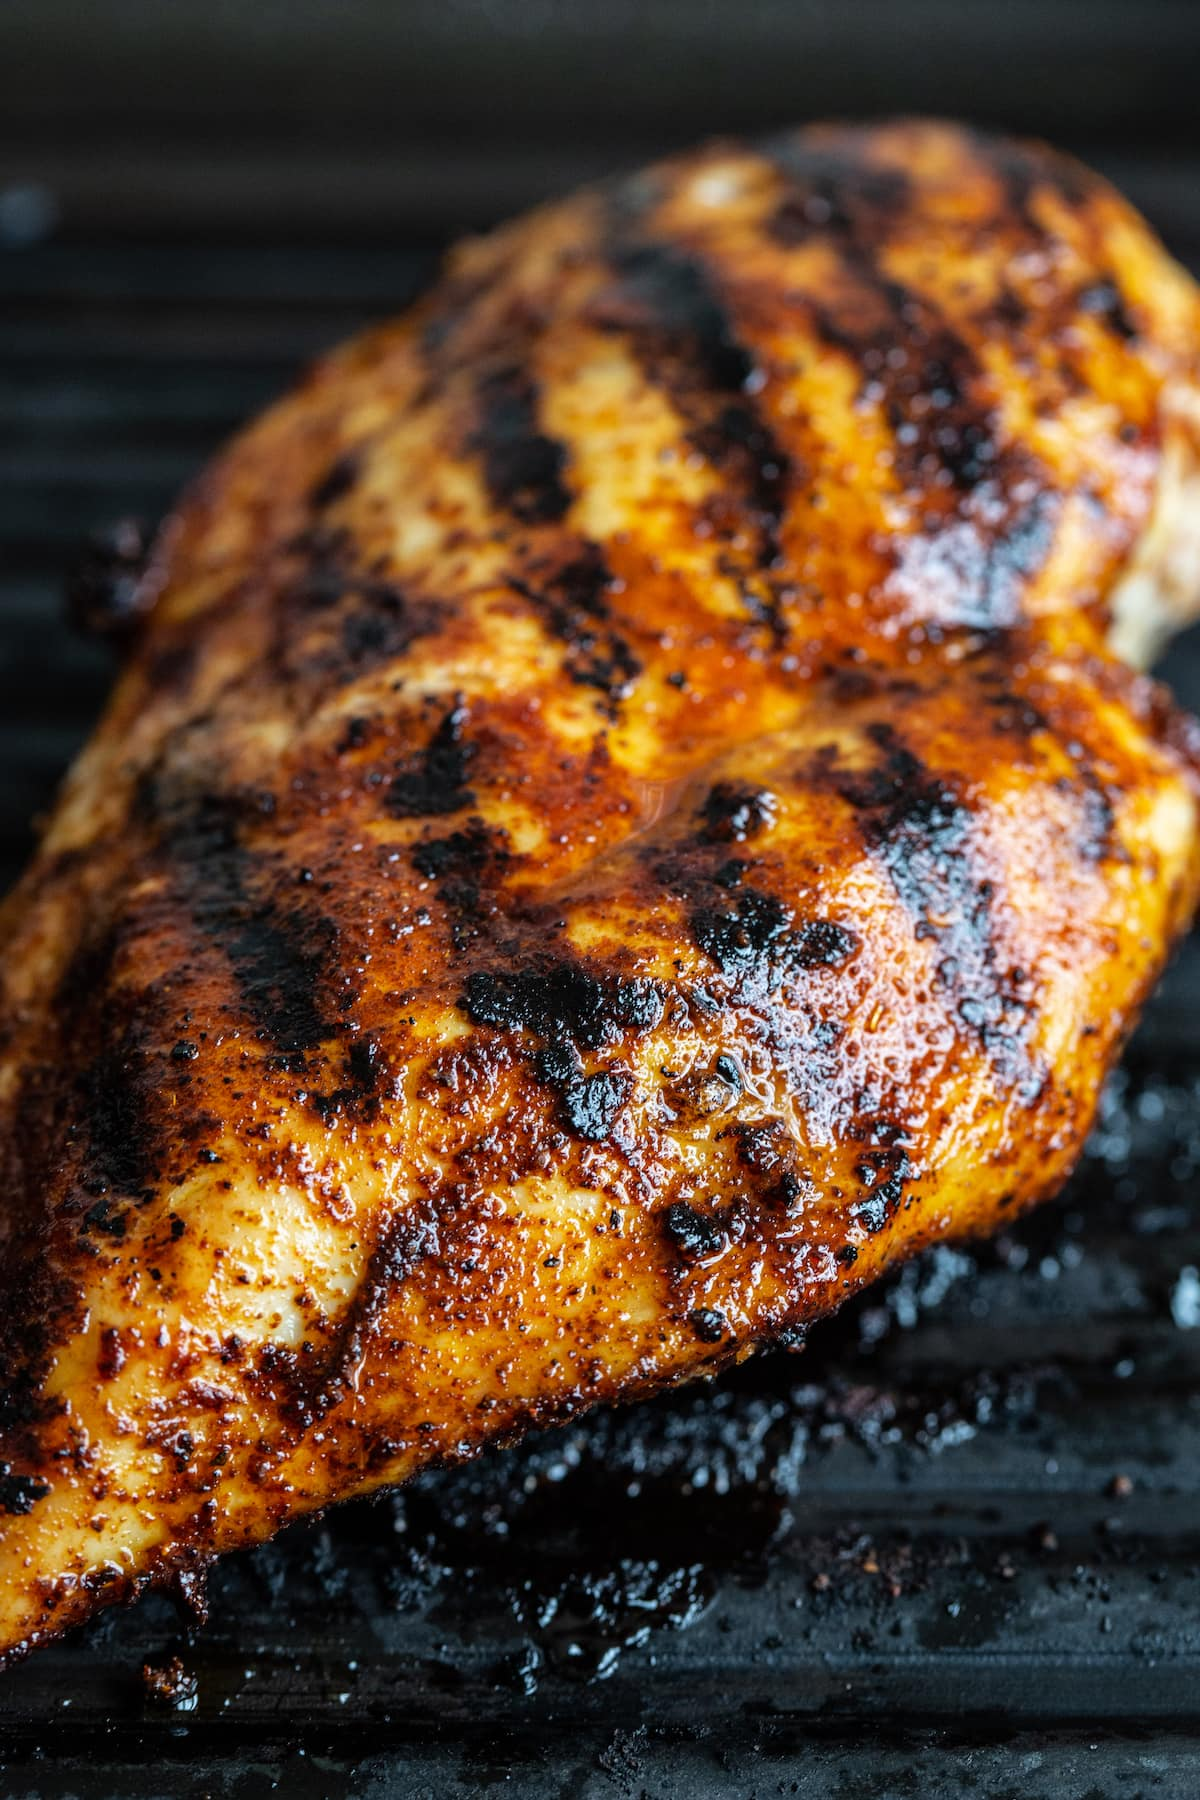 Blackened grilled chicken in a grill pan.